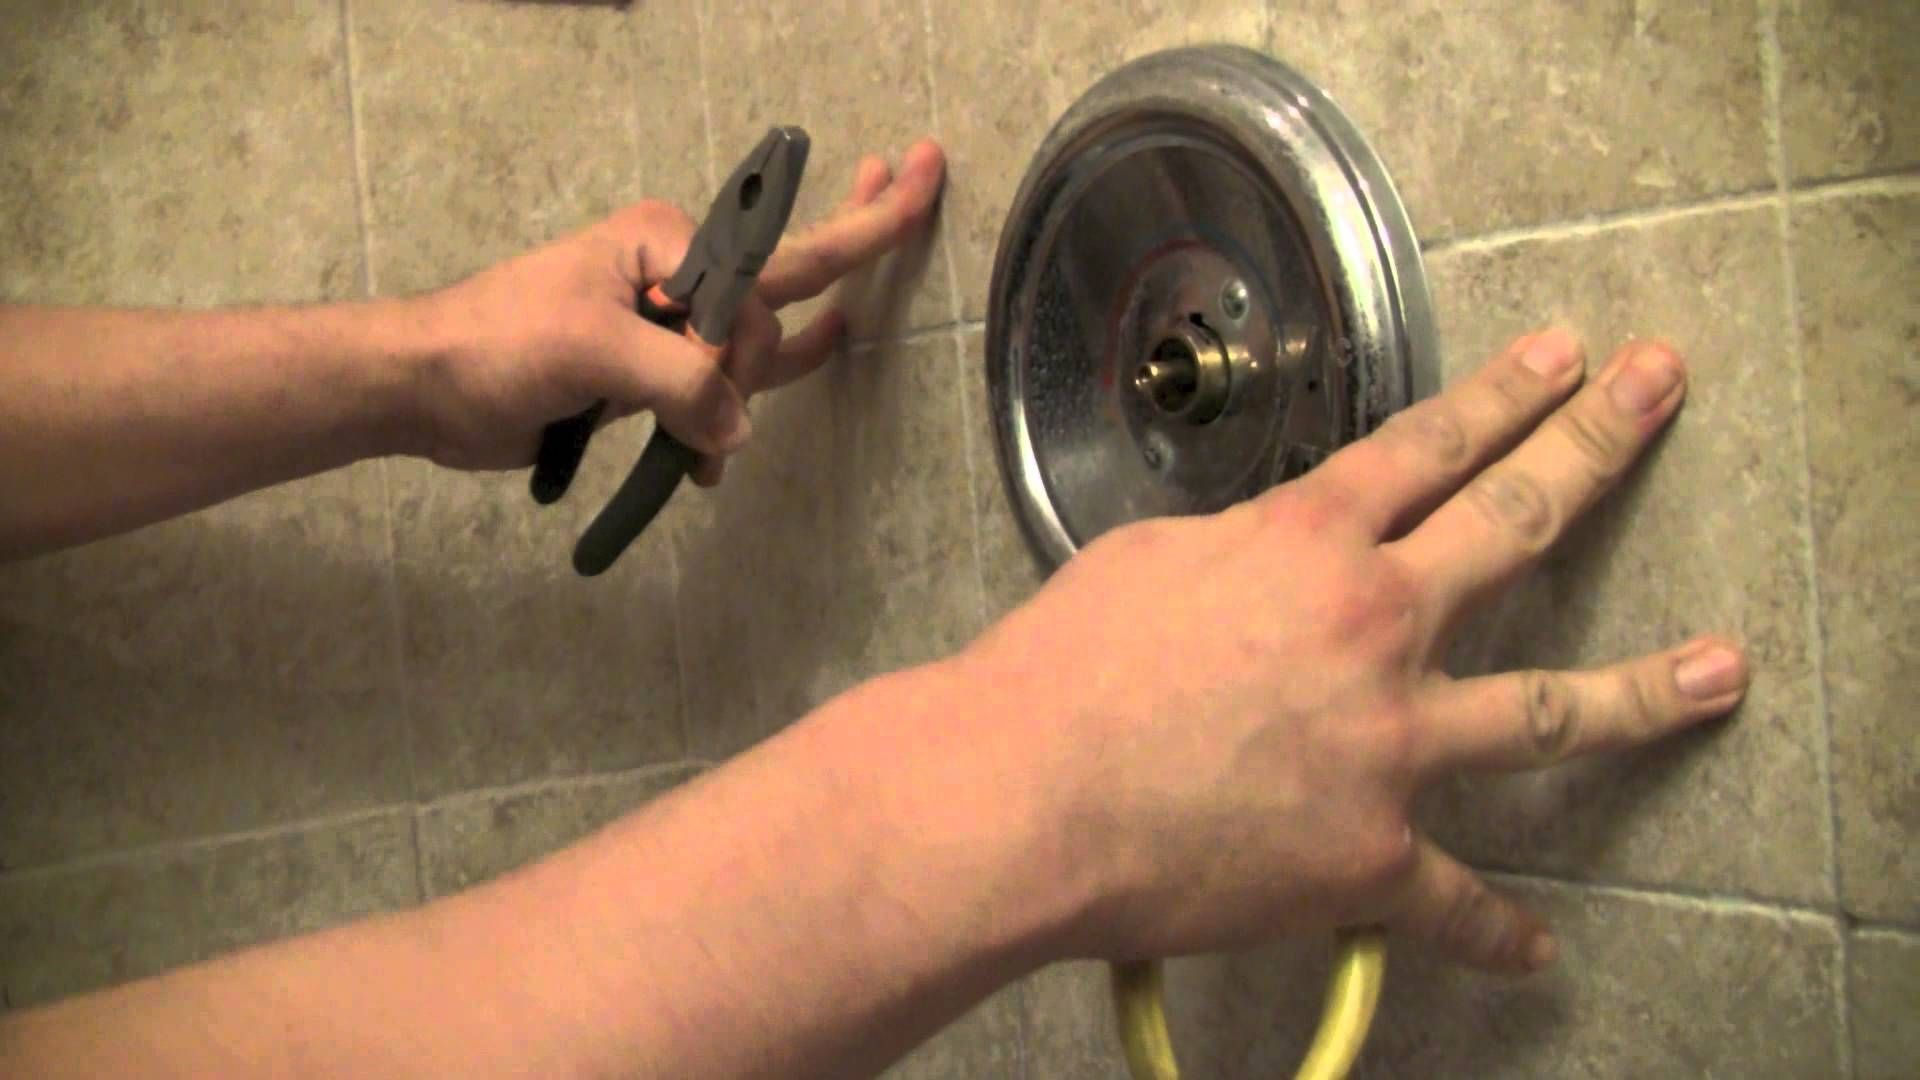 How To Repair A Moen Shower Faucet Step By Step My Bathtub Drips